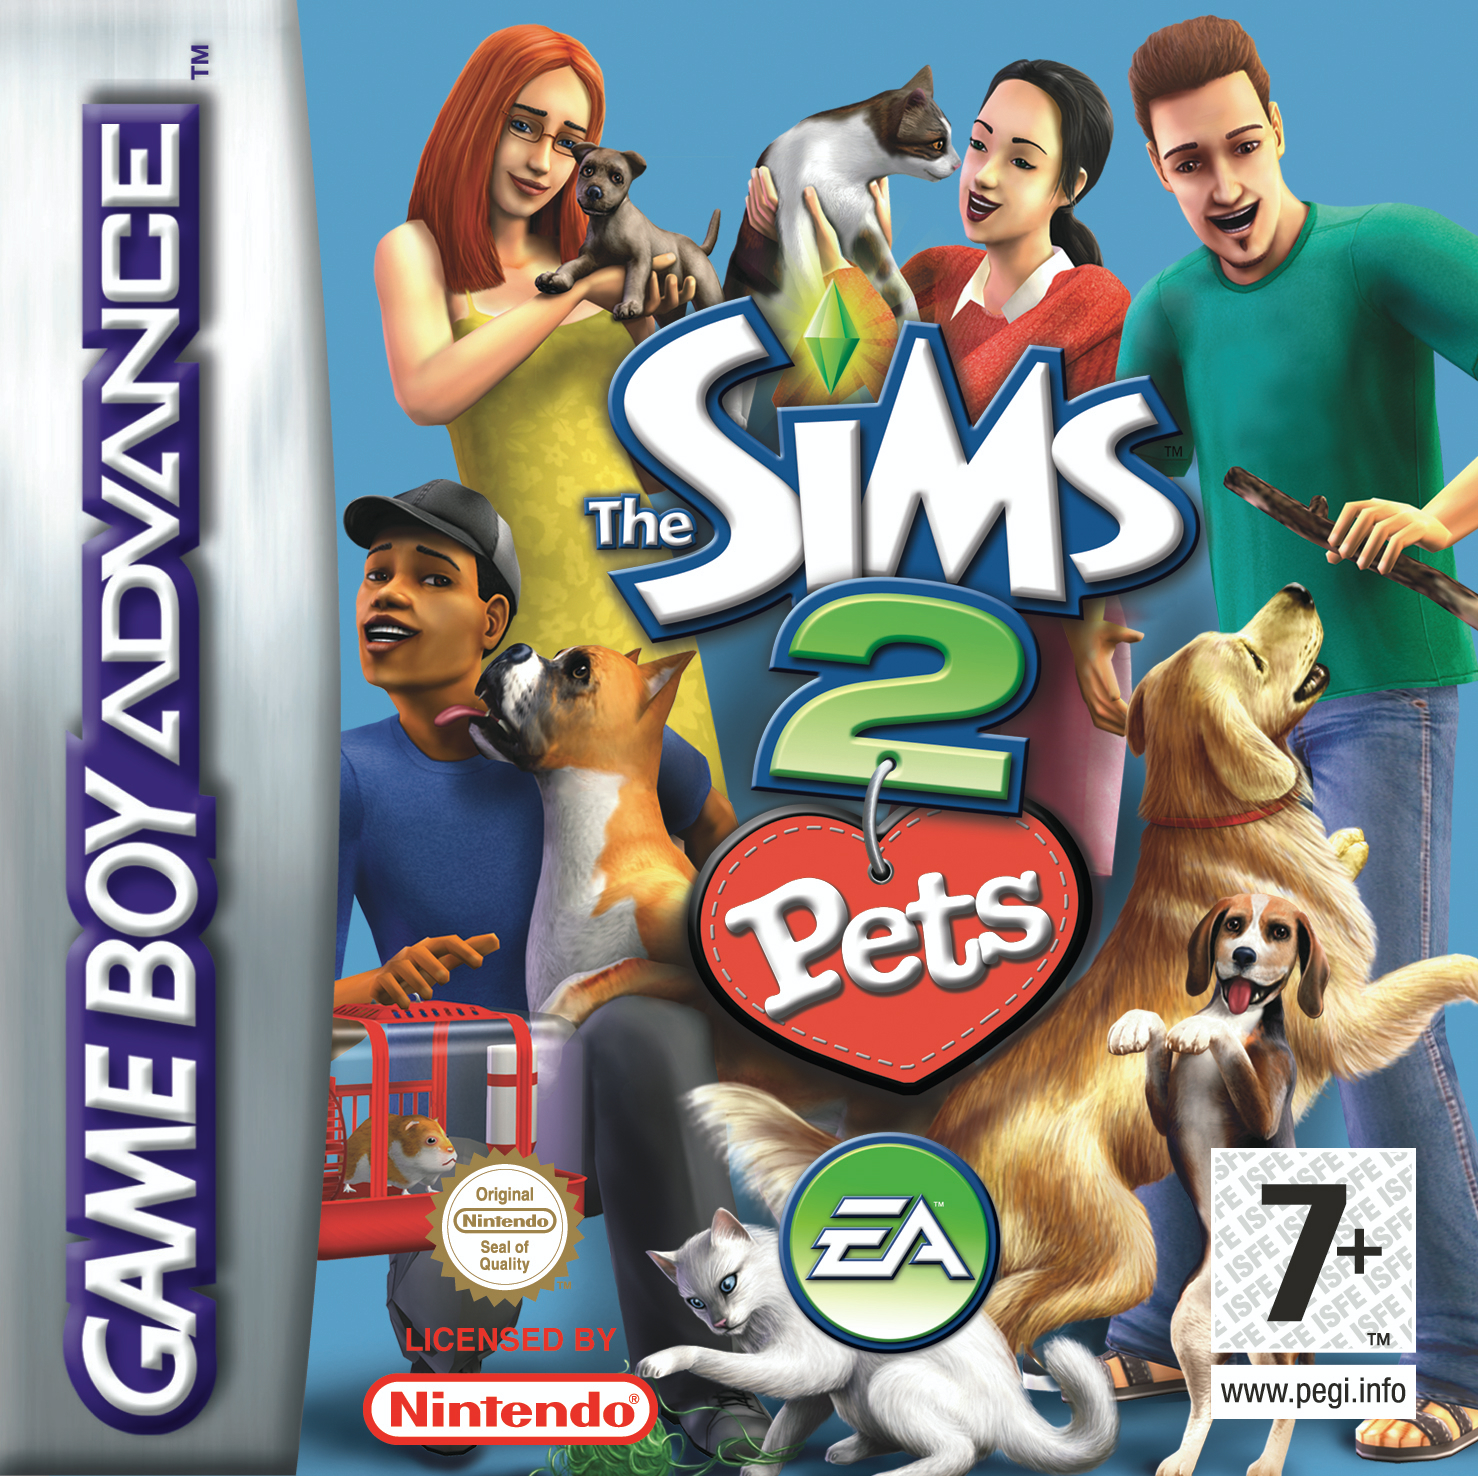 The Sims 2: Pets (GBA)